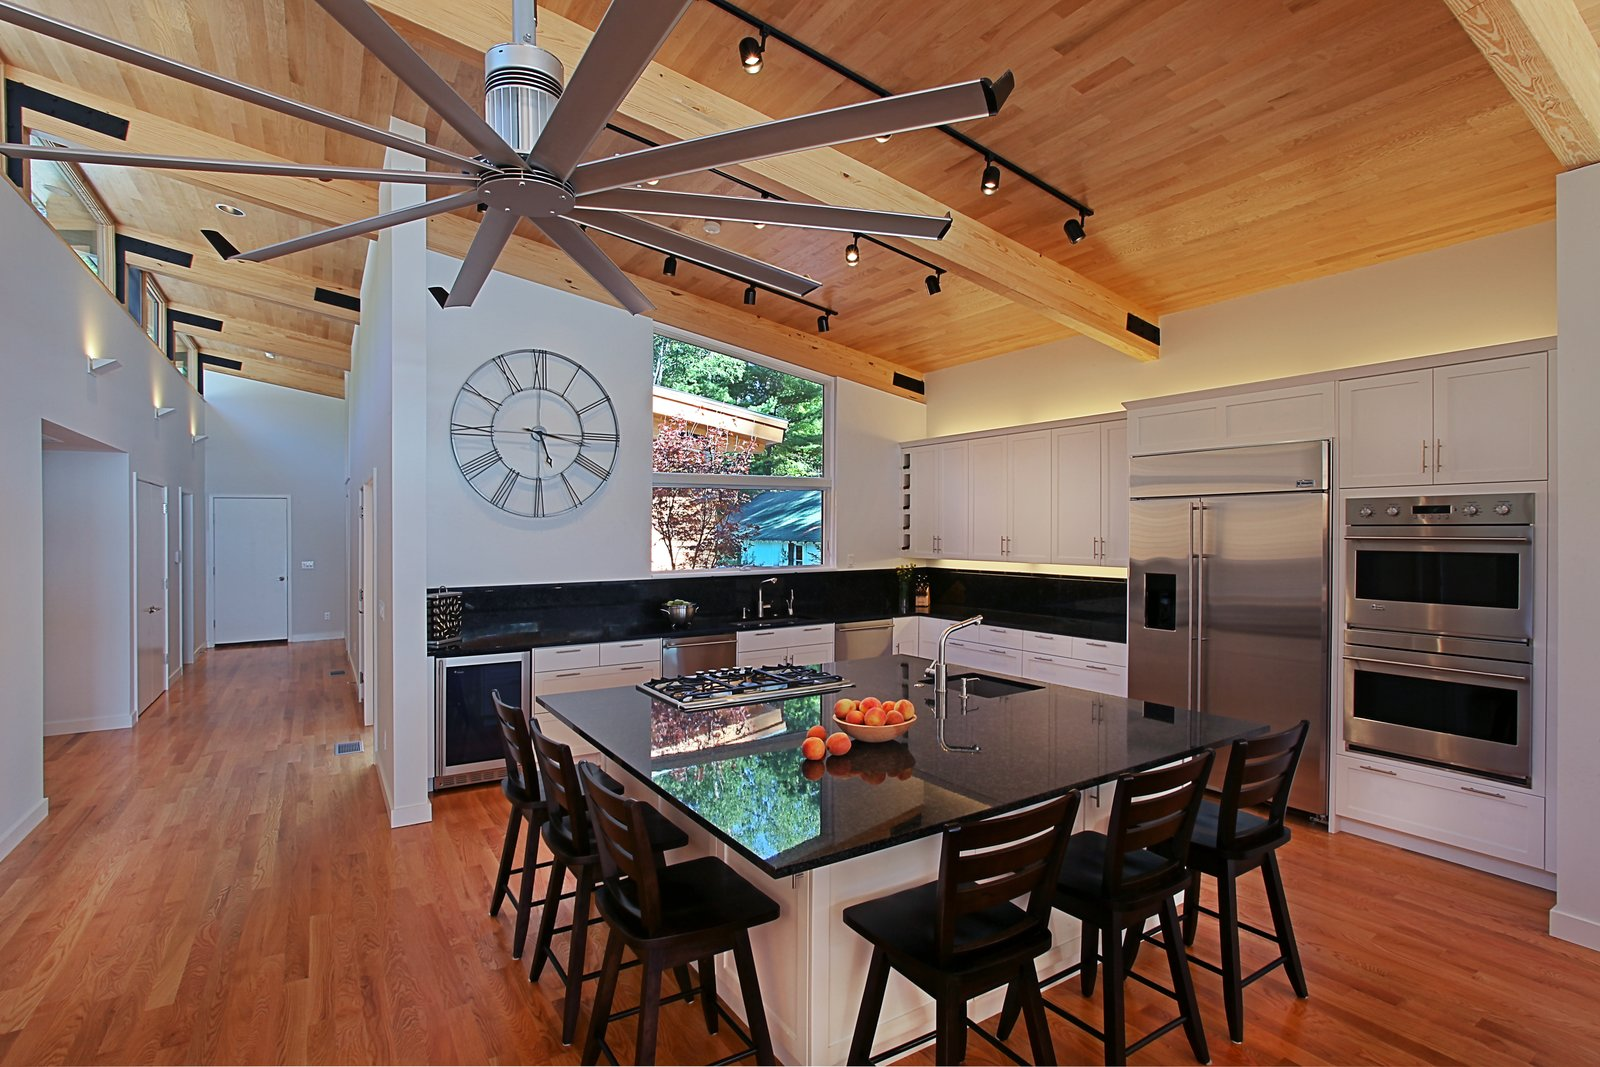 Kitchen with exposed beams and oak ceiling  Higgins Lake House by Jeff Jordan Architects